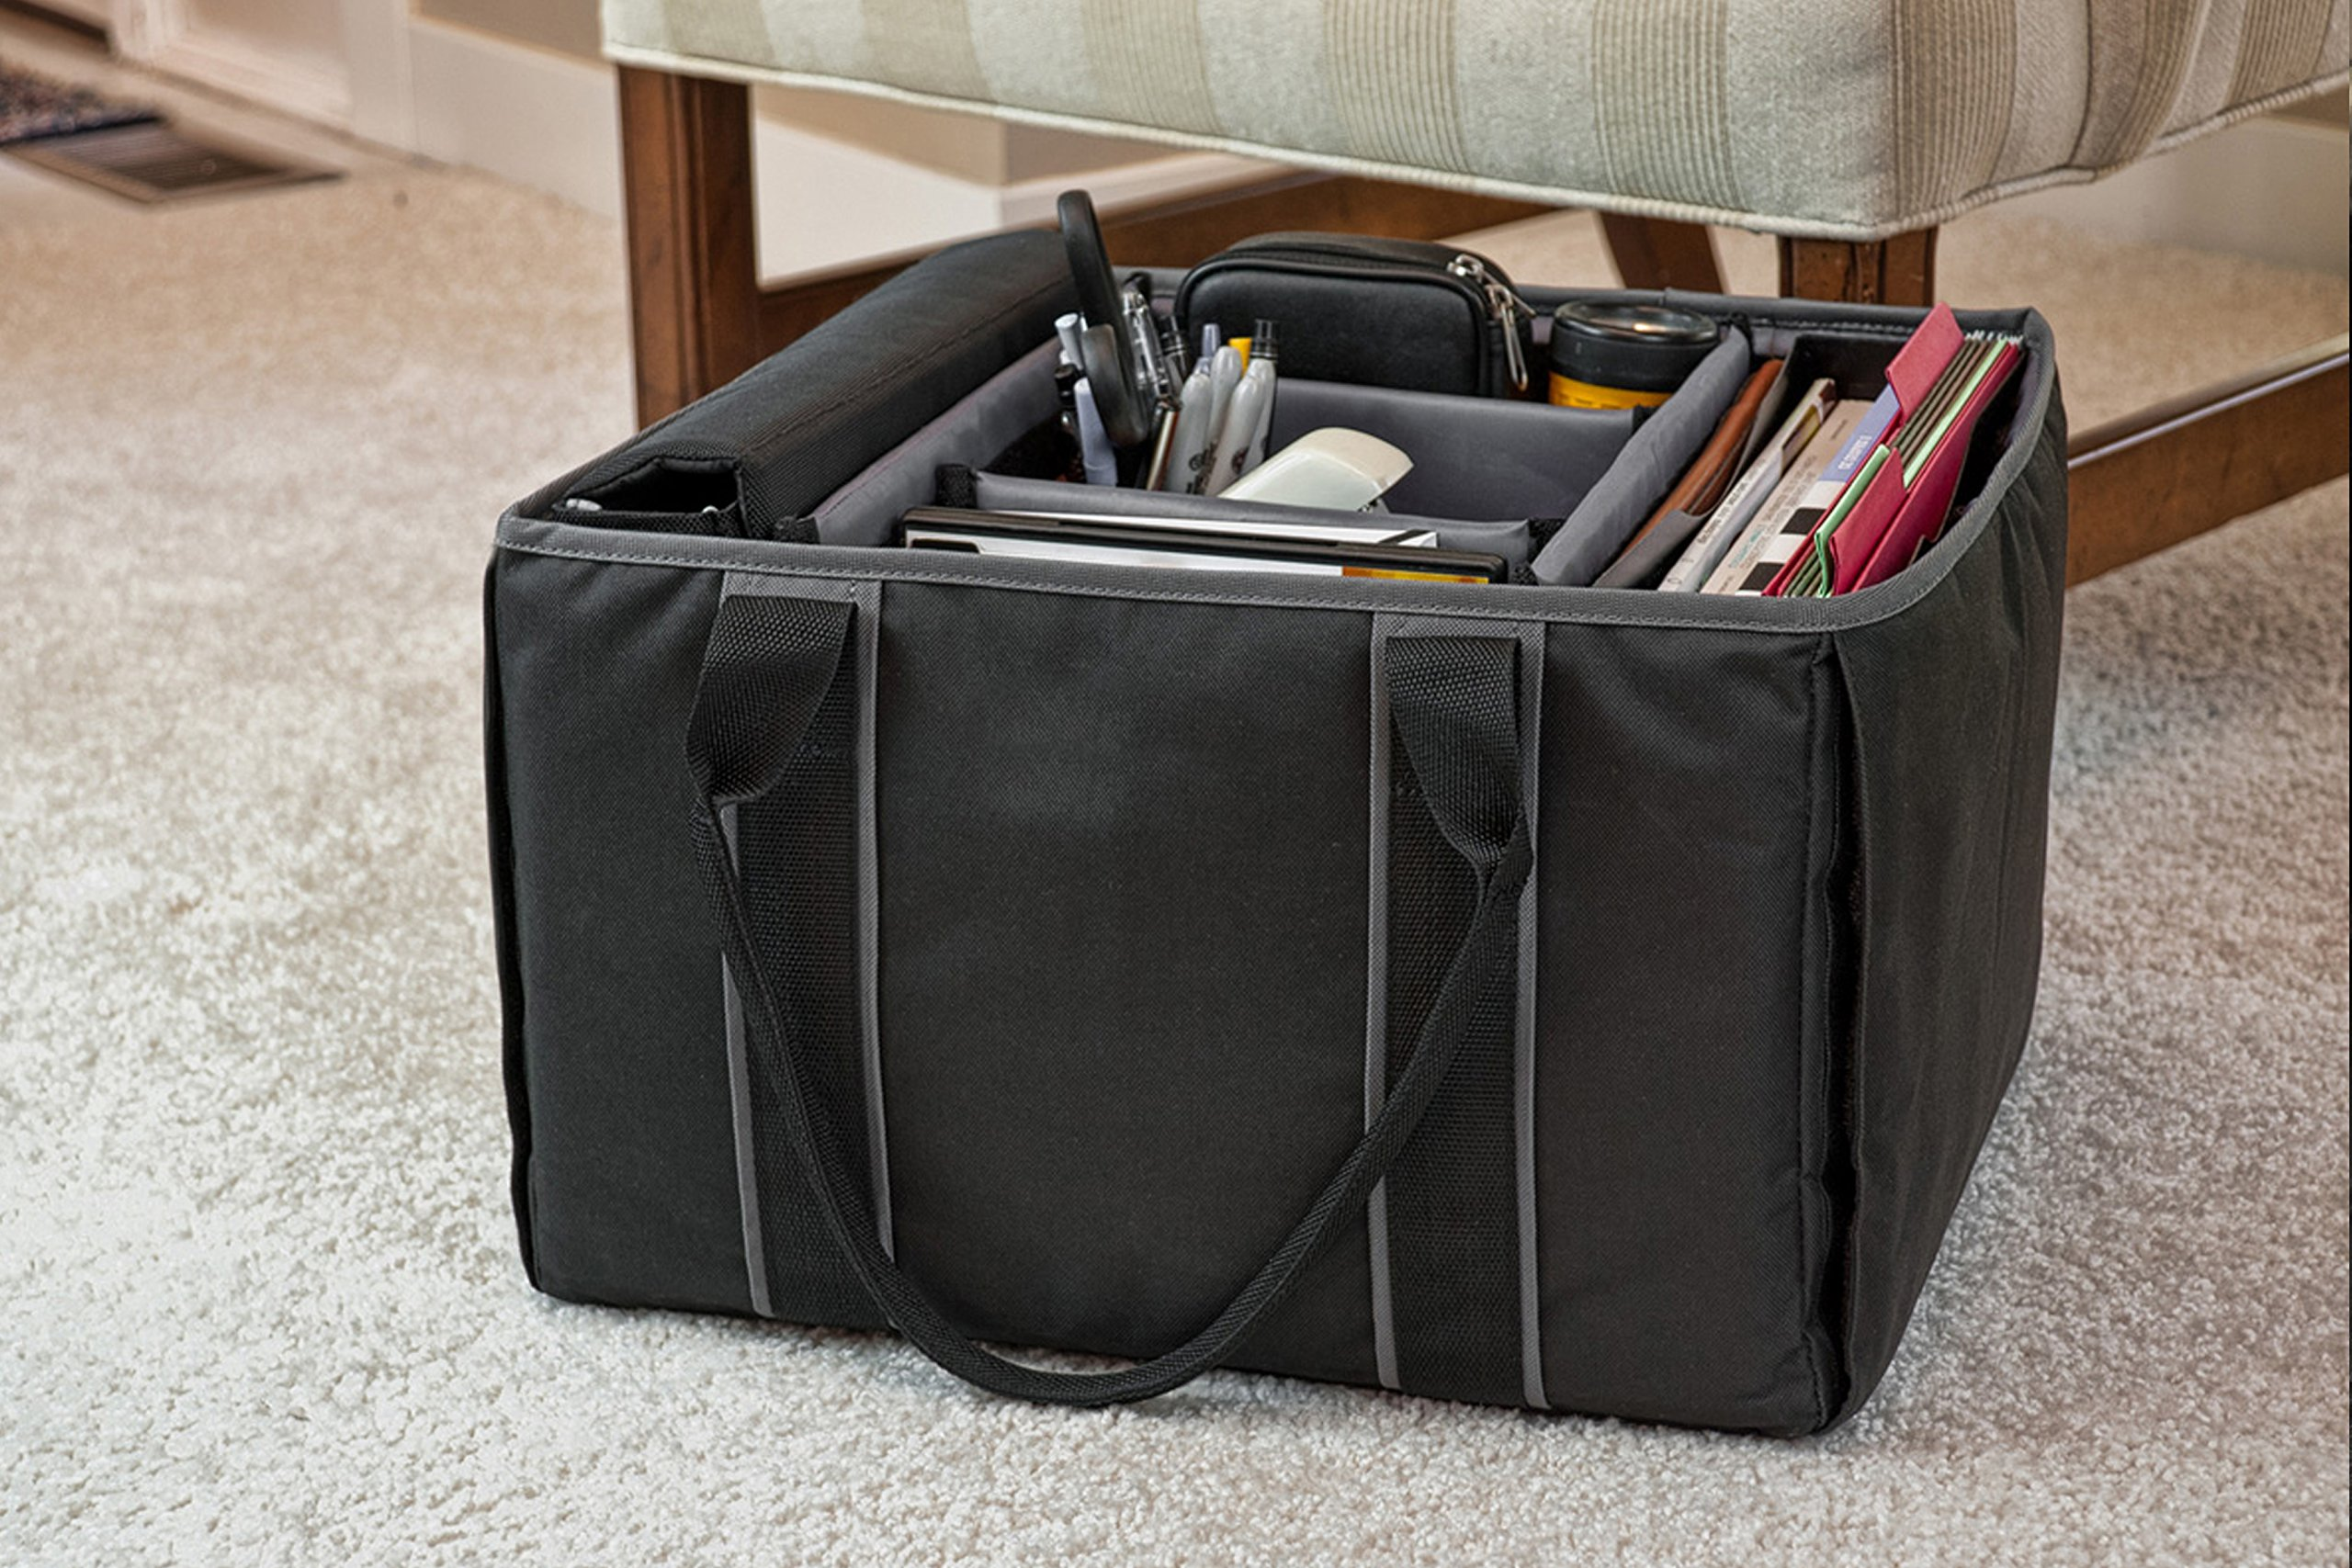 AutoExec AETote-08 Black/Grey File Tote with One Cooler and One Hanging File Holder by AutoExec (Image #15)